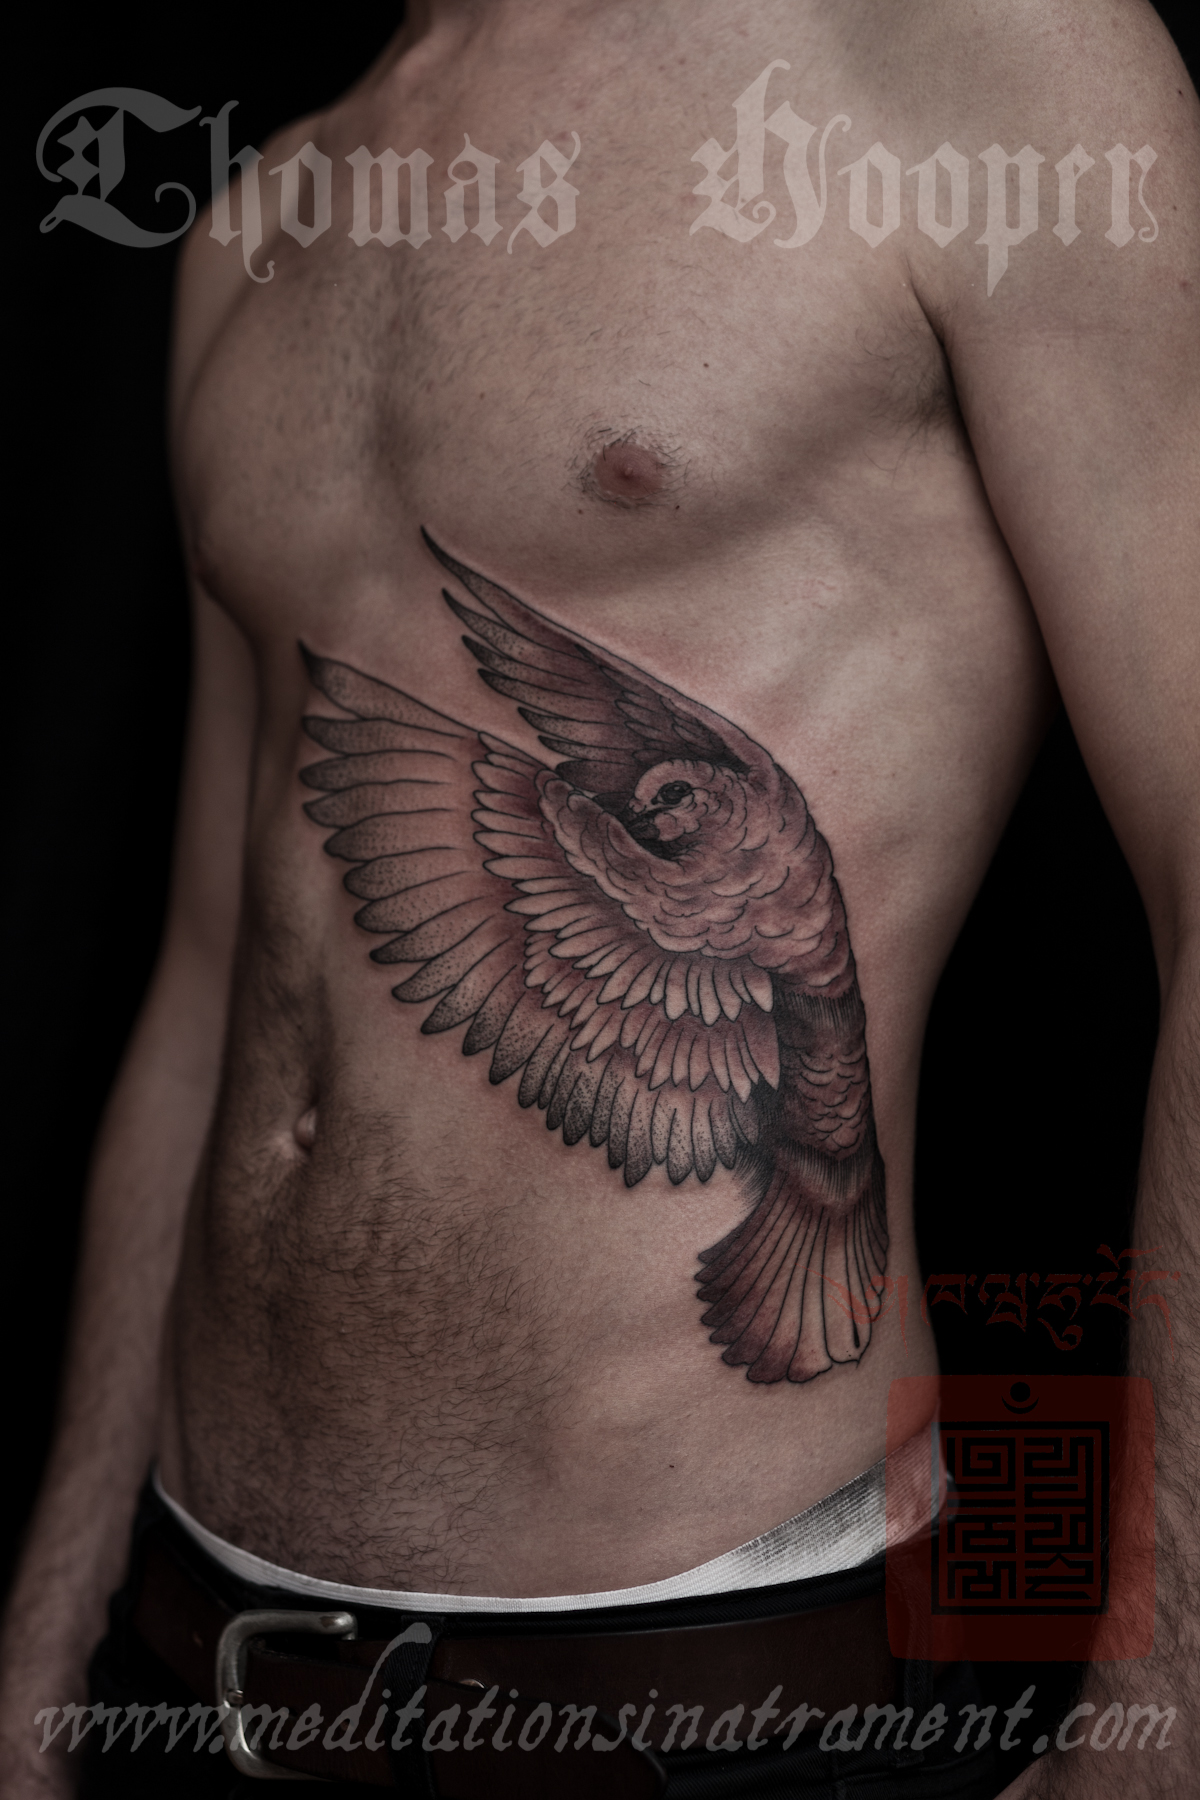 Cool new tattoo ideas for guys tyler russell tyrussell on pinterest